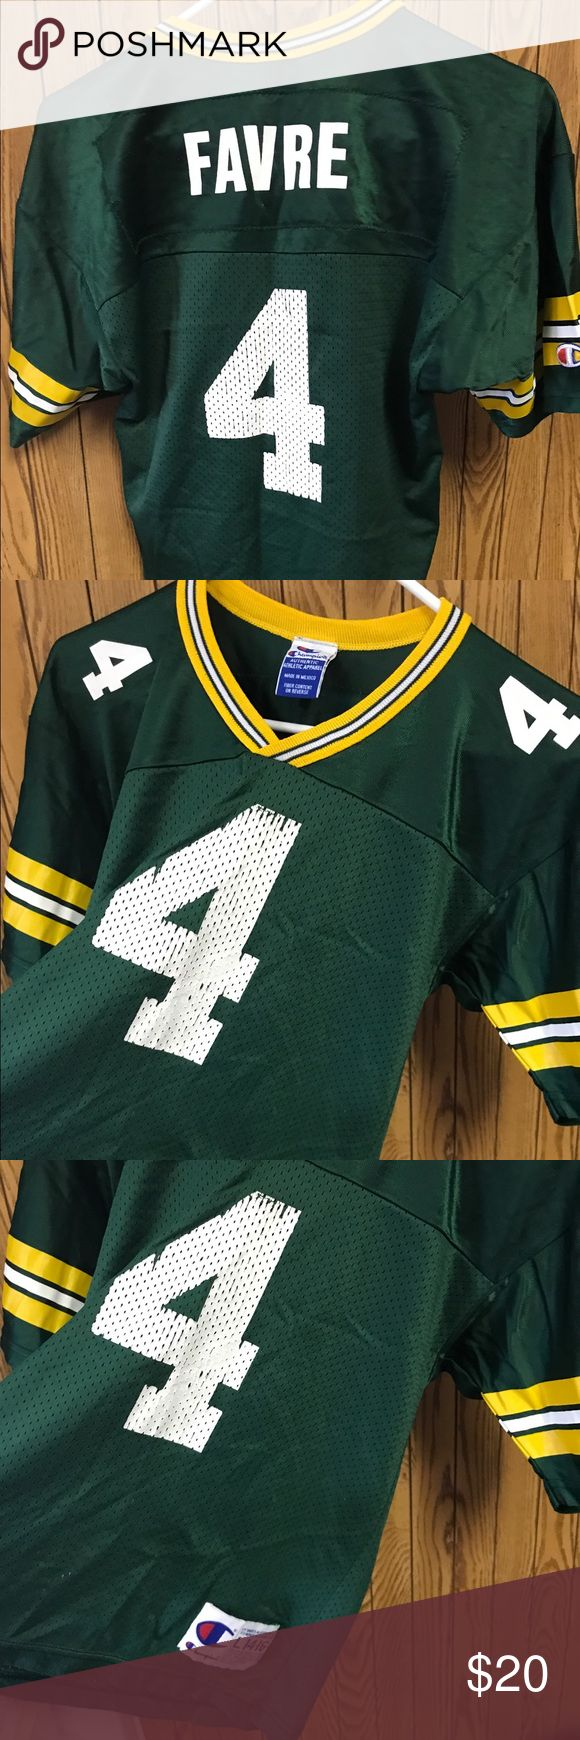 Youth Large Green Bay packers Jersey This is in well lived condition. Broken in and comfy! Ships fast!! Champion Shirts & Tops